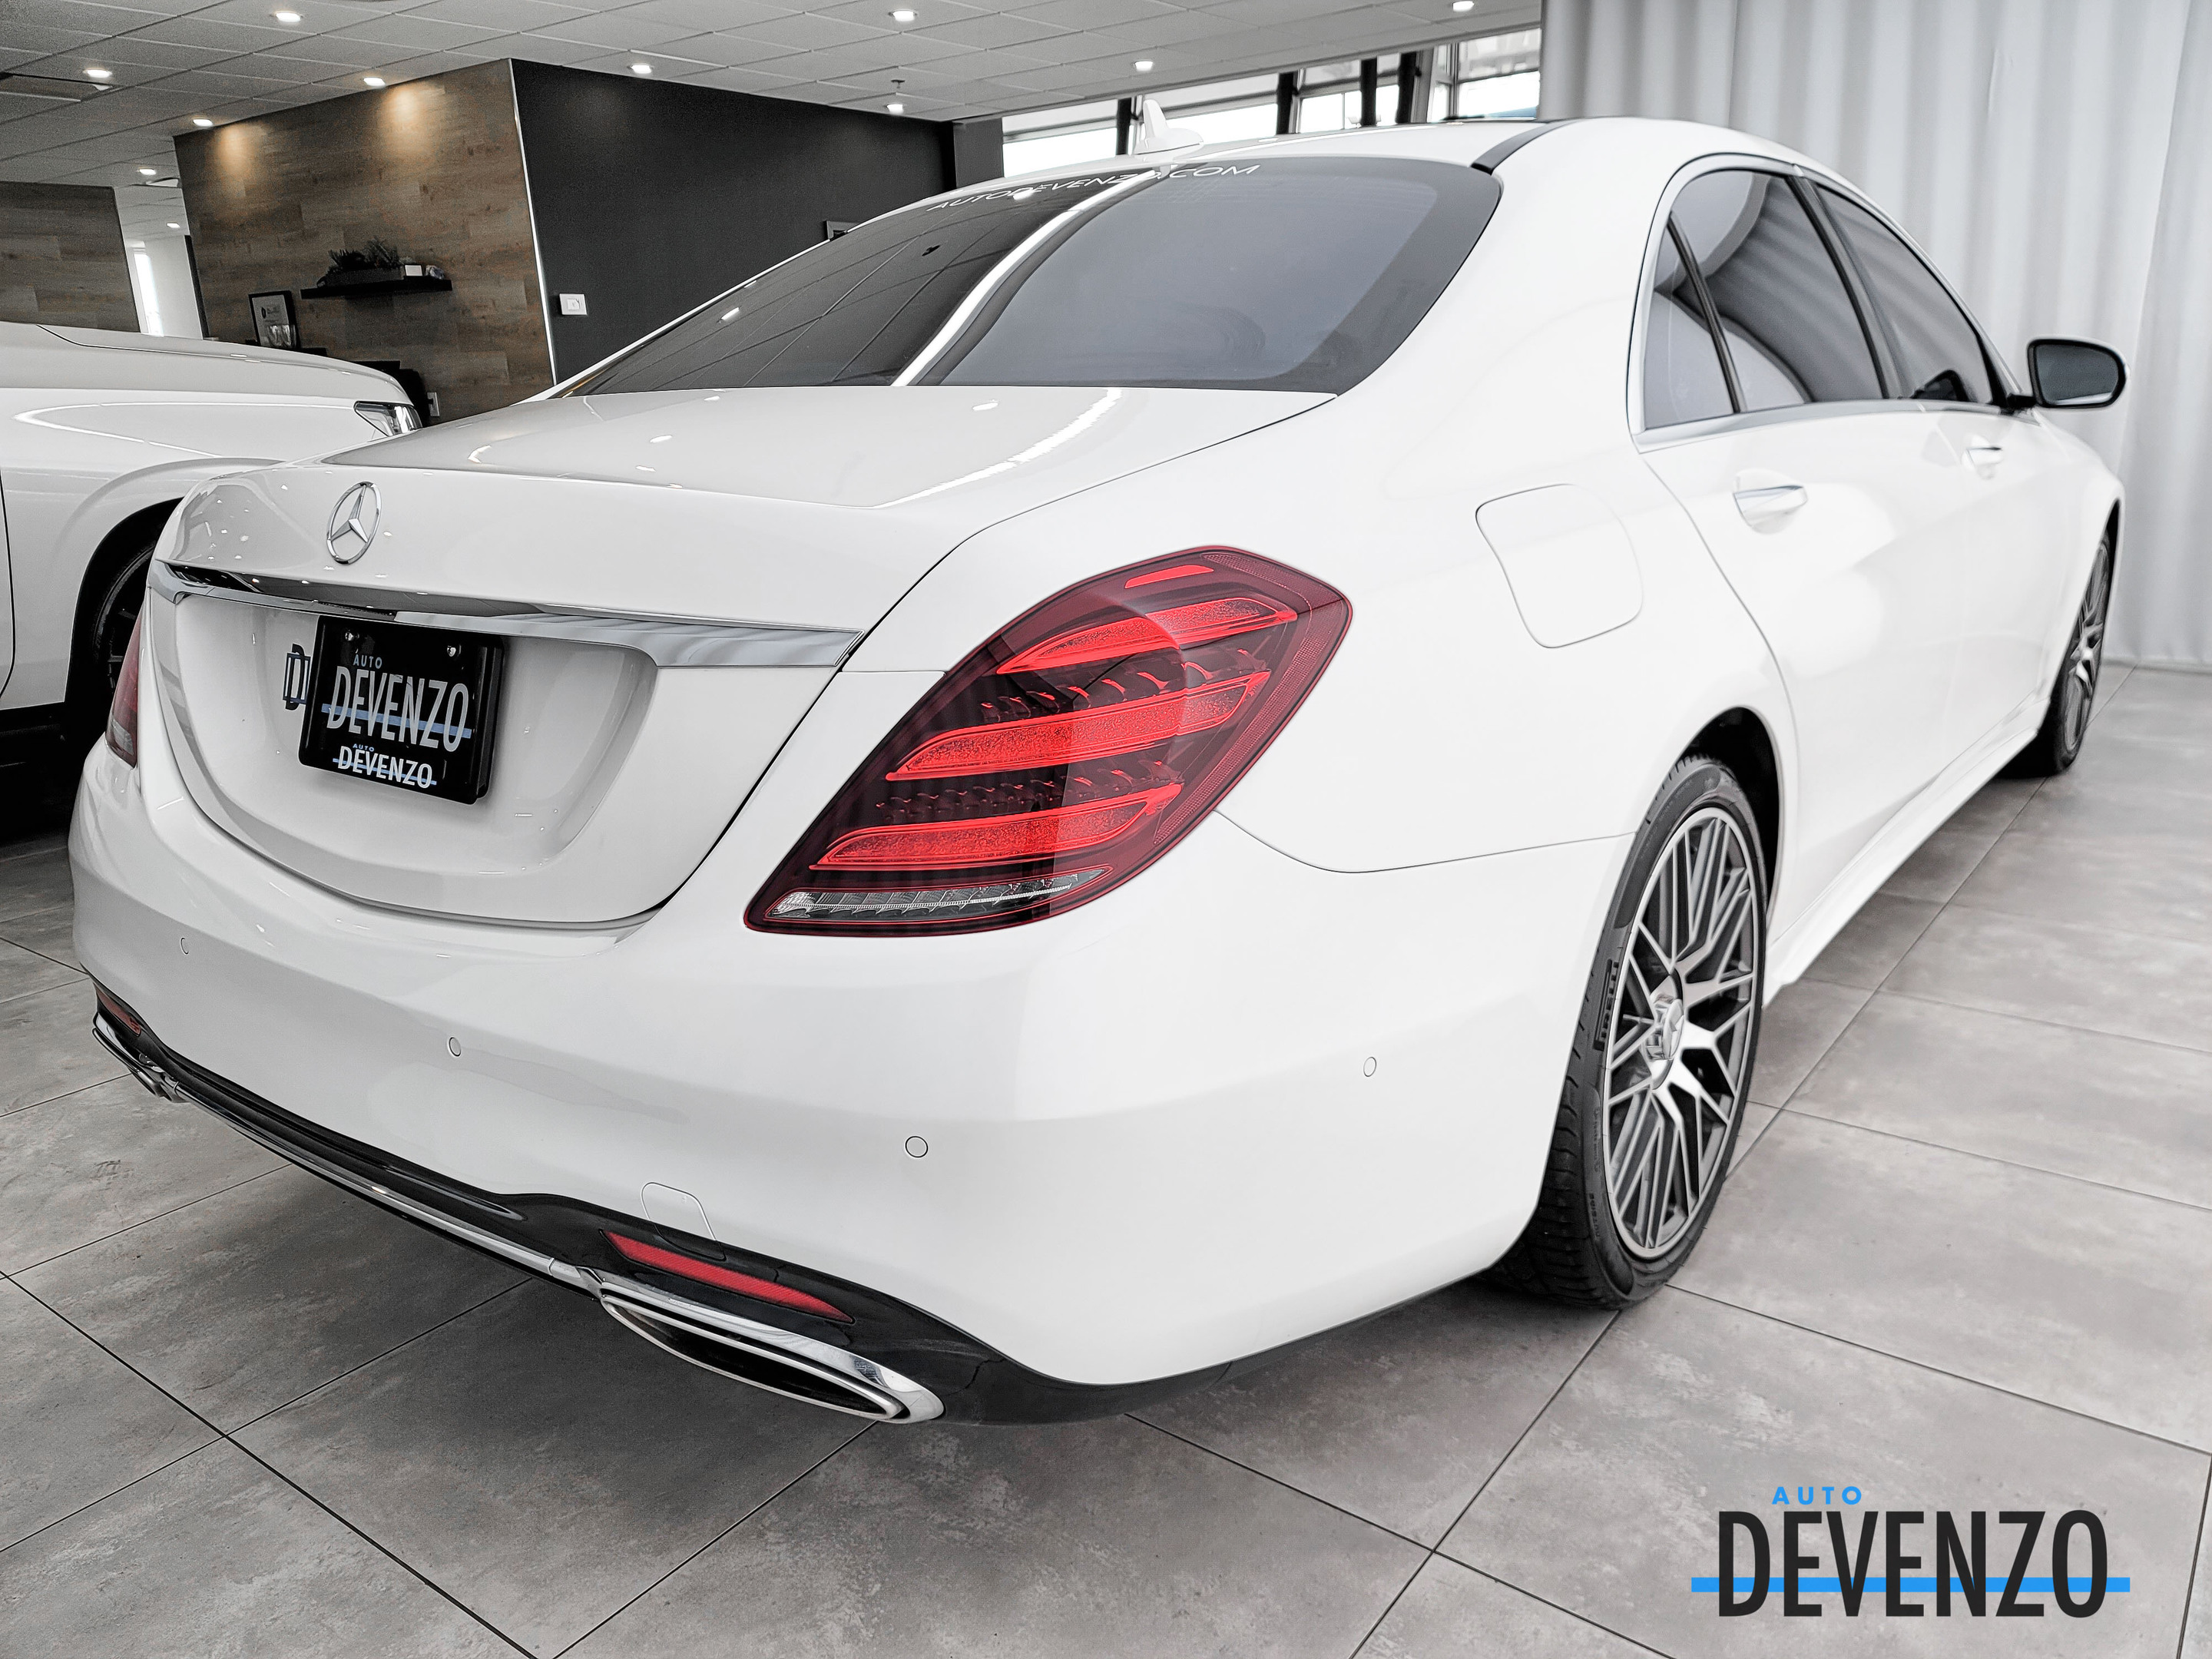 2018 Mercedes-Benz S-Class S560 4MATIC LWB Executive Rear Seating 2+2 complet